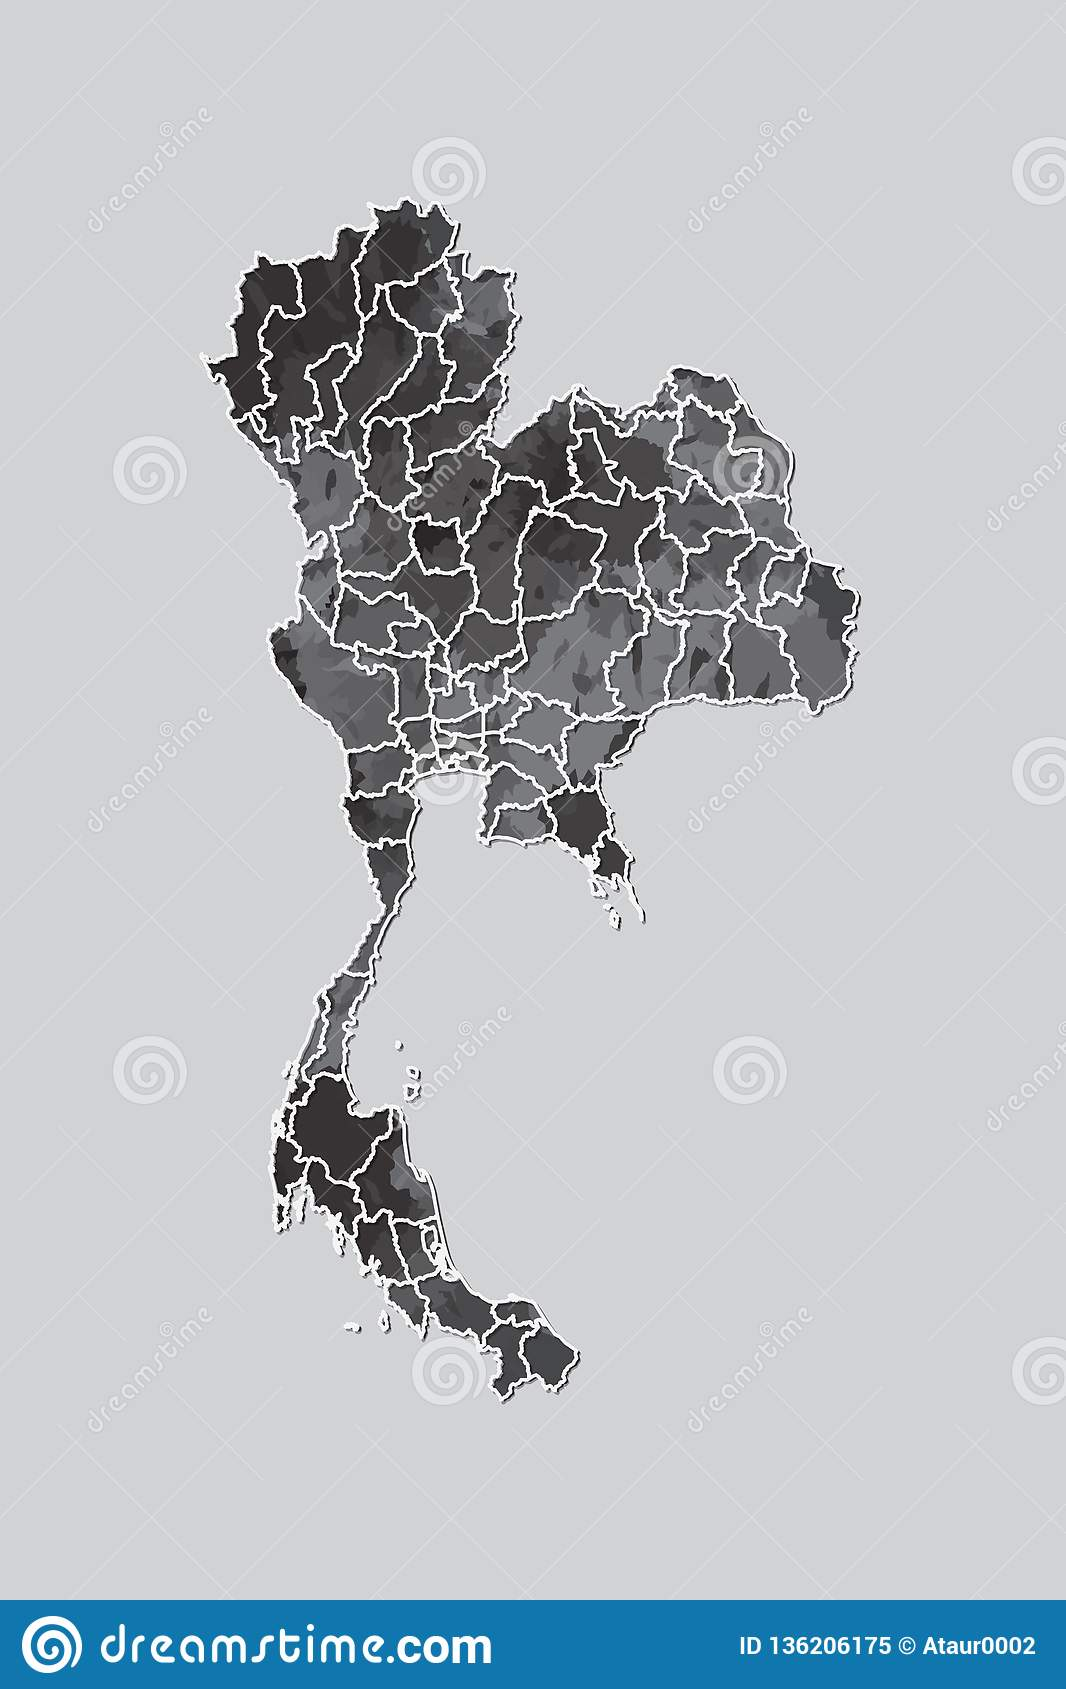 Thailand watercolor map vector illustration of black color with border lines of different provinces on light background